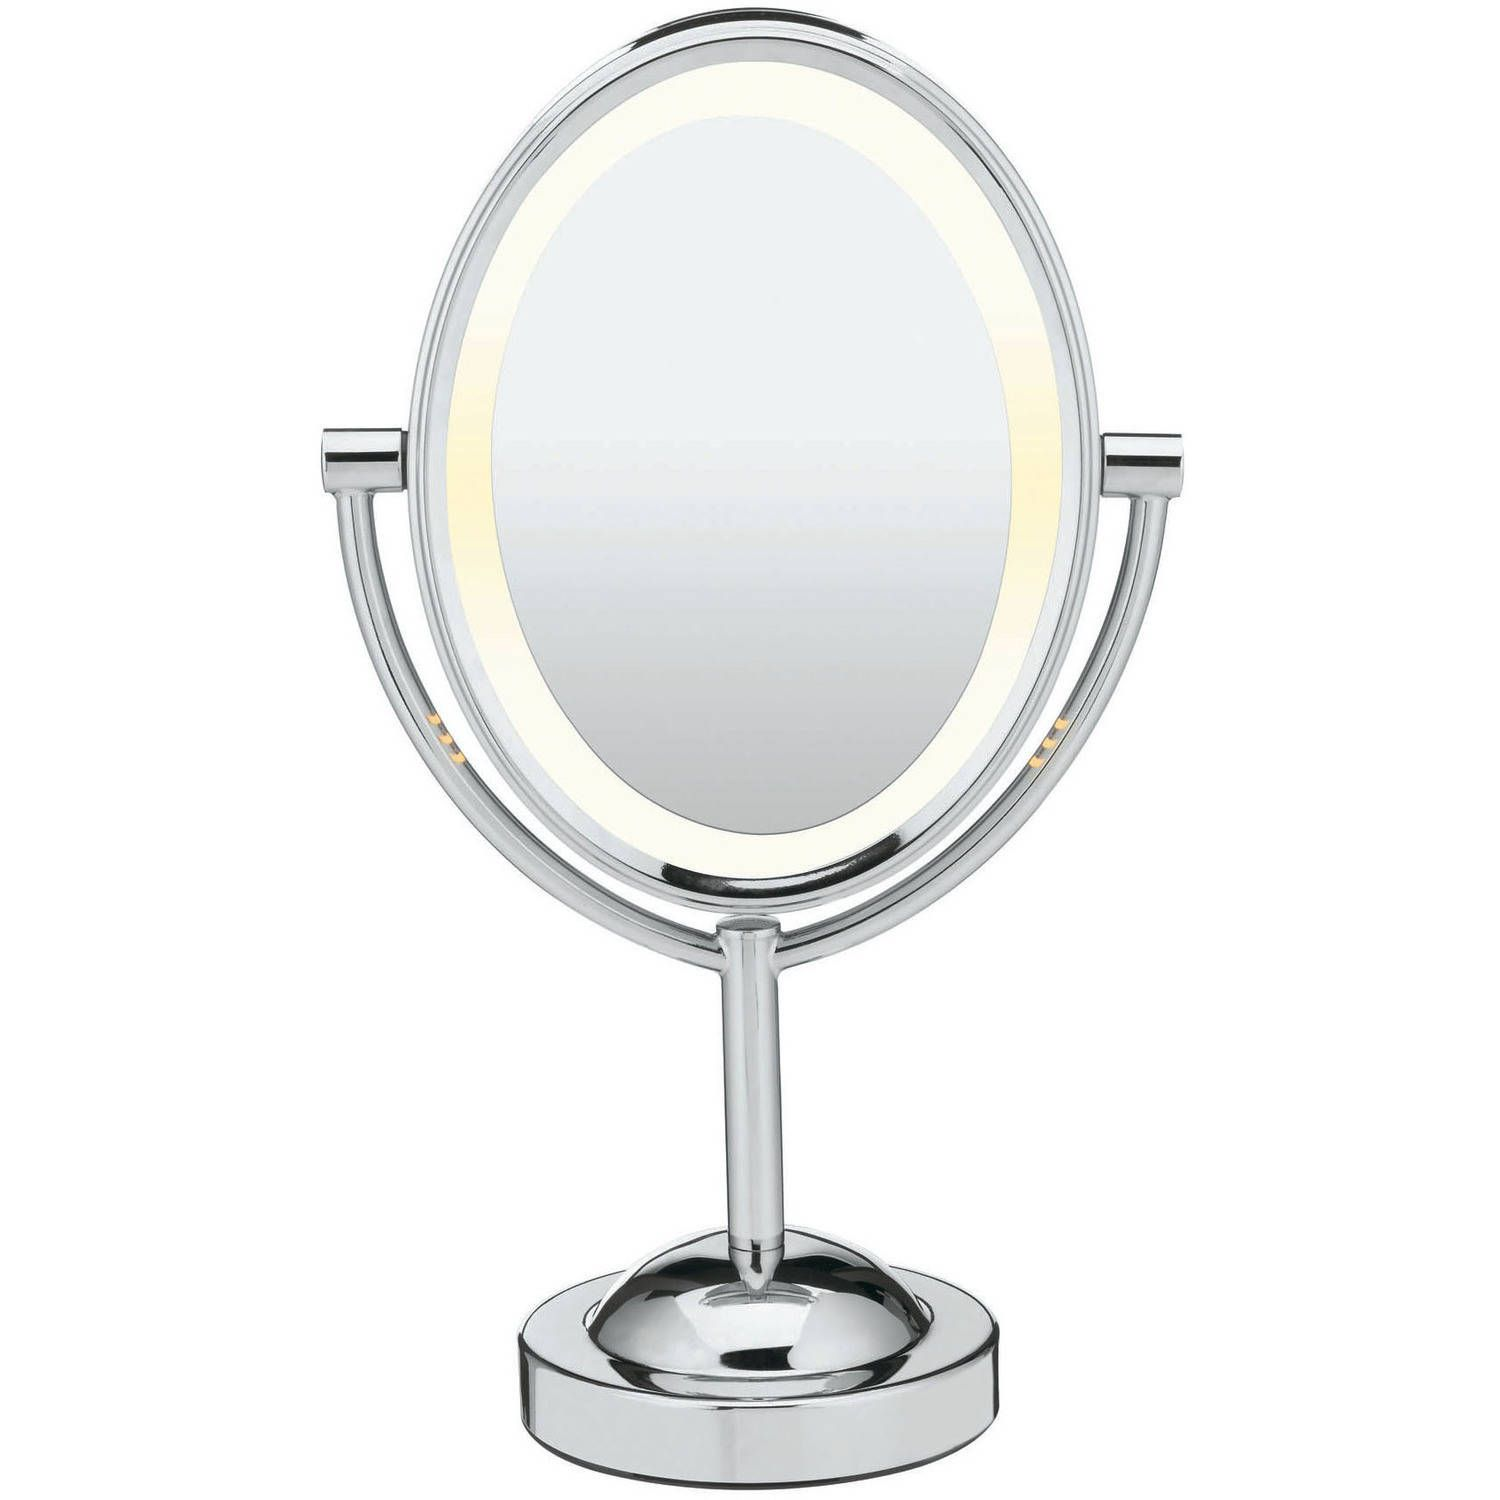 Beauty Makeup Mirror With Lights Double Sided Mirror Oval Mirror